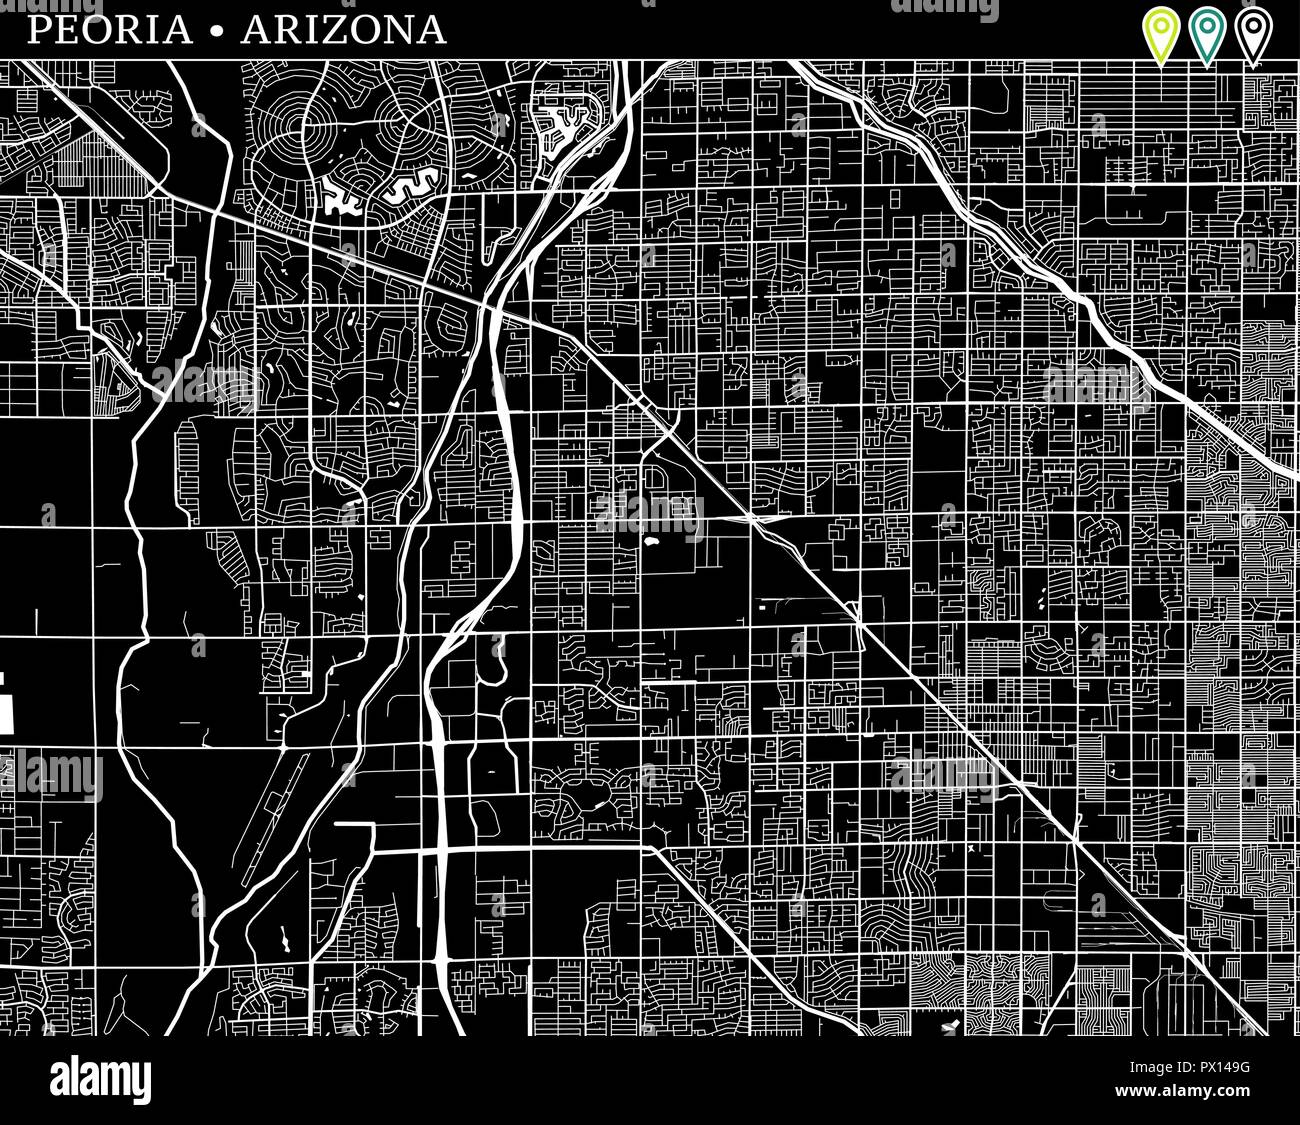 Simple Map Of Peoria Arizona Usa Black And White Version For